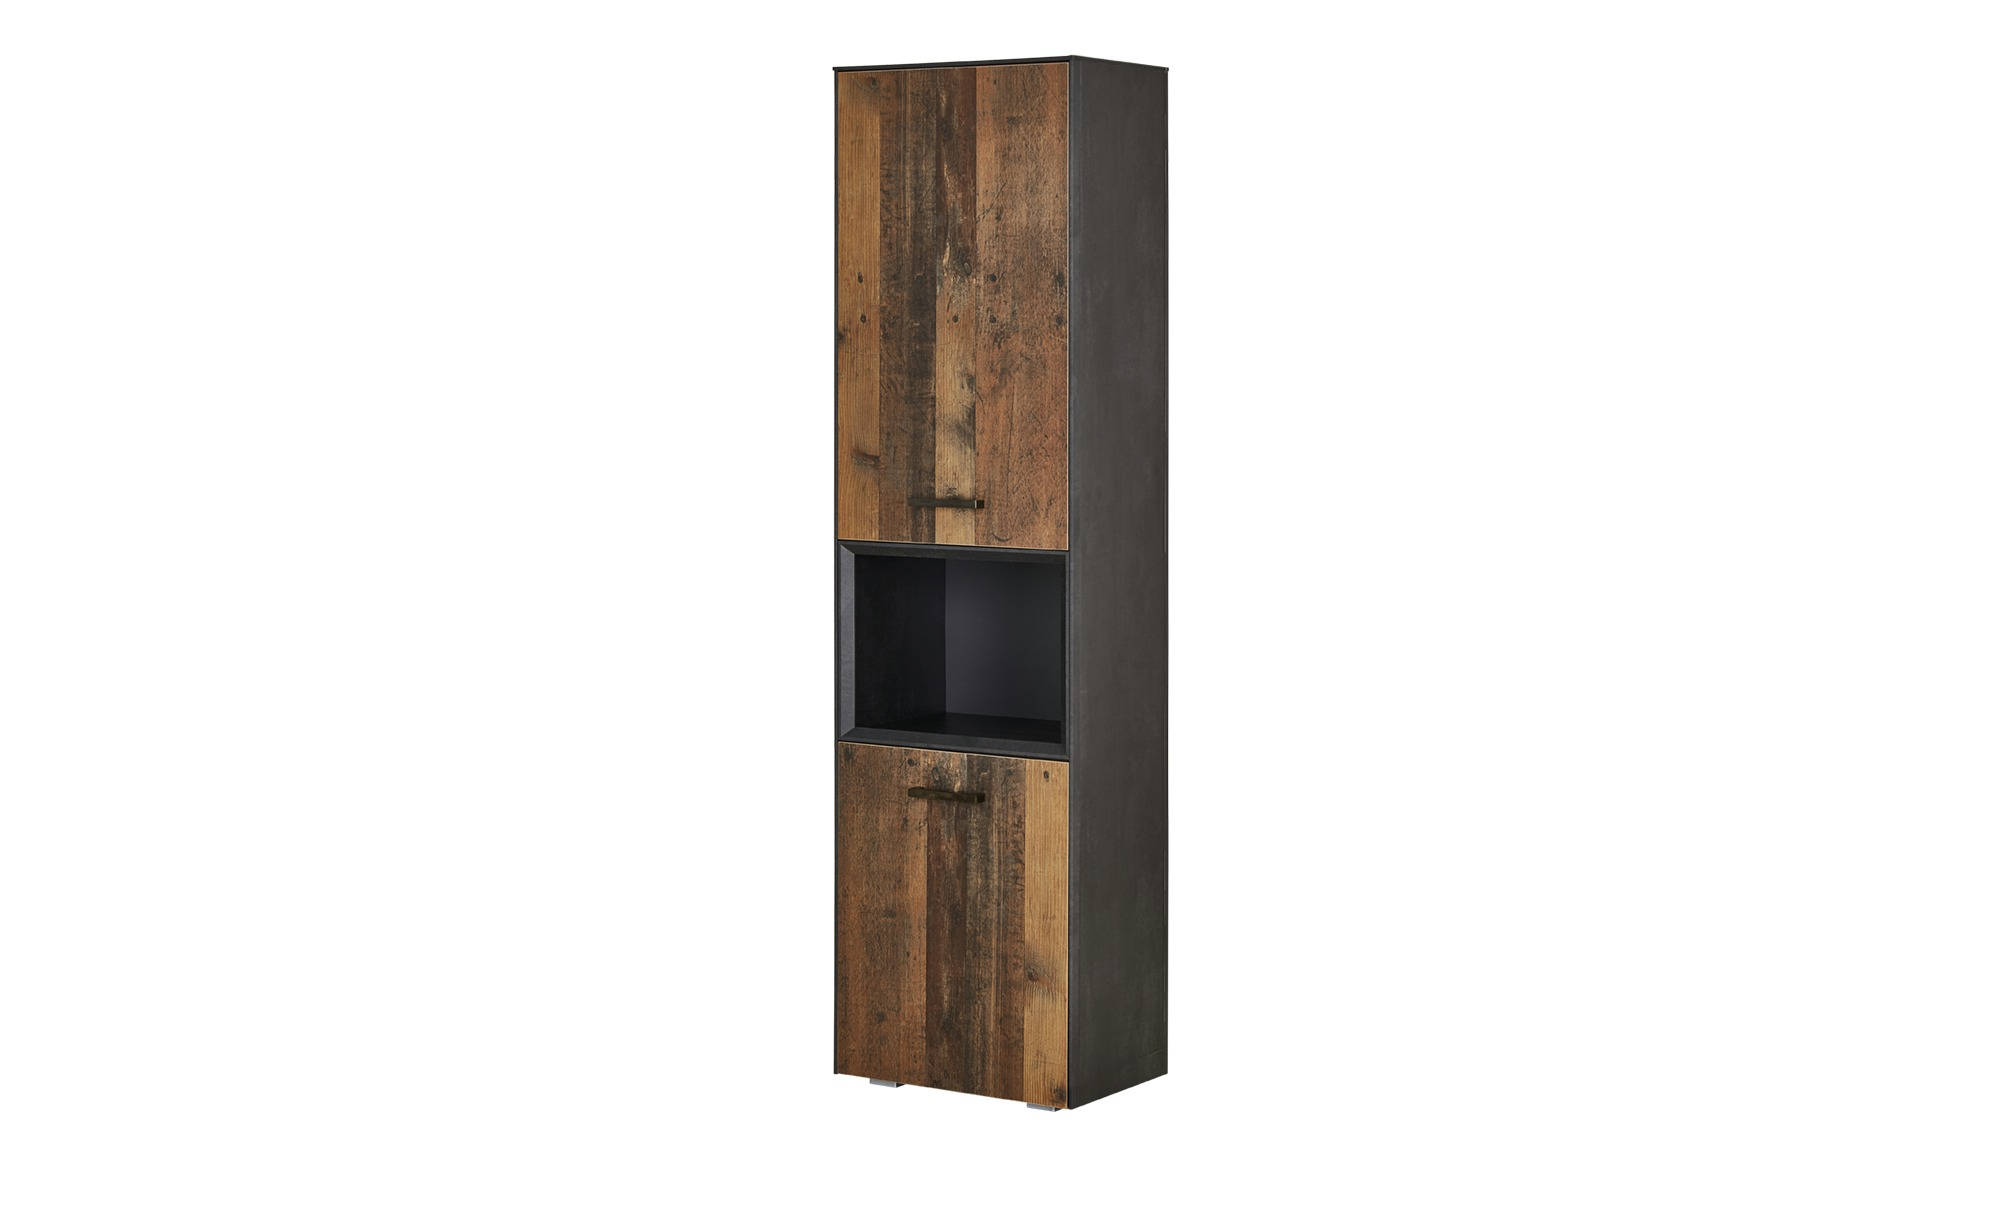 Stauraumelement  Matera ¦ holzfarben ¦ Maße (cm): B: 50 H: 195 T: 41 Kommoden & Sideboards > Highboards - Höffner